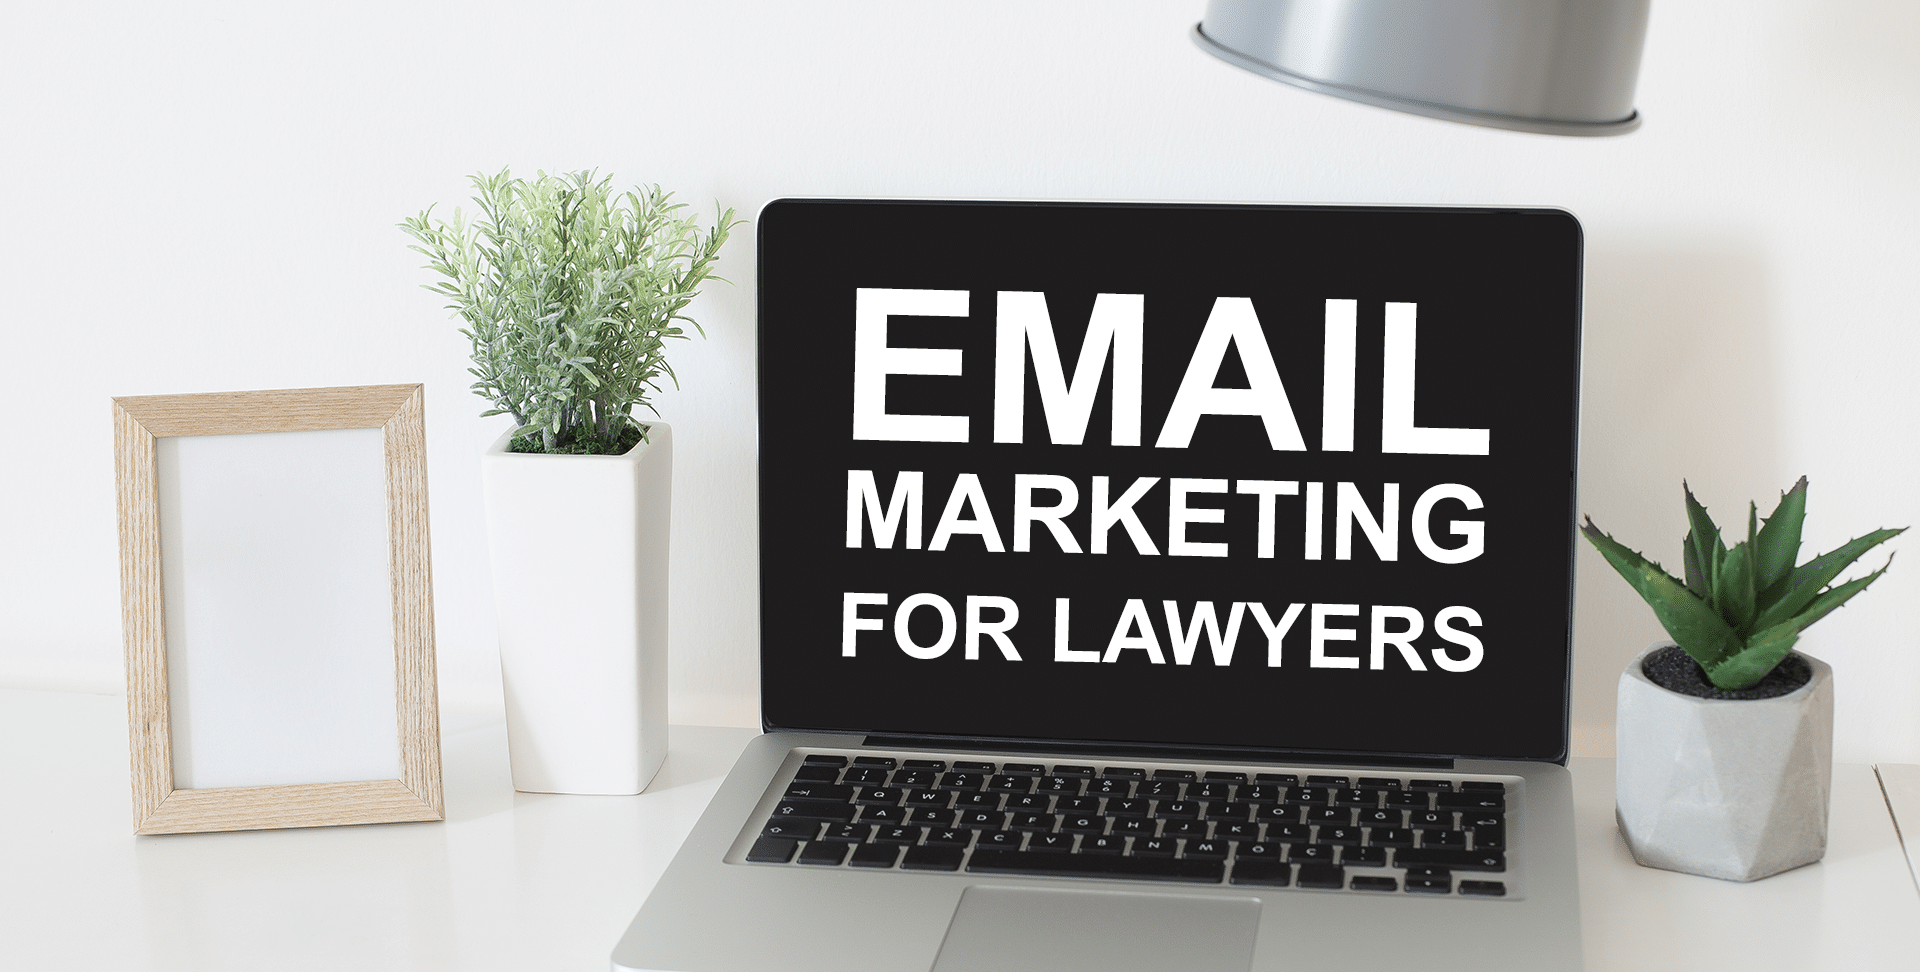 Law Firm Marketing – 3 Ways to Attract More Clients Through Email